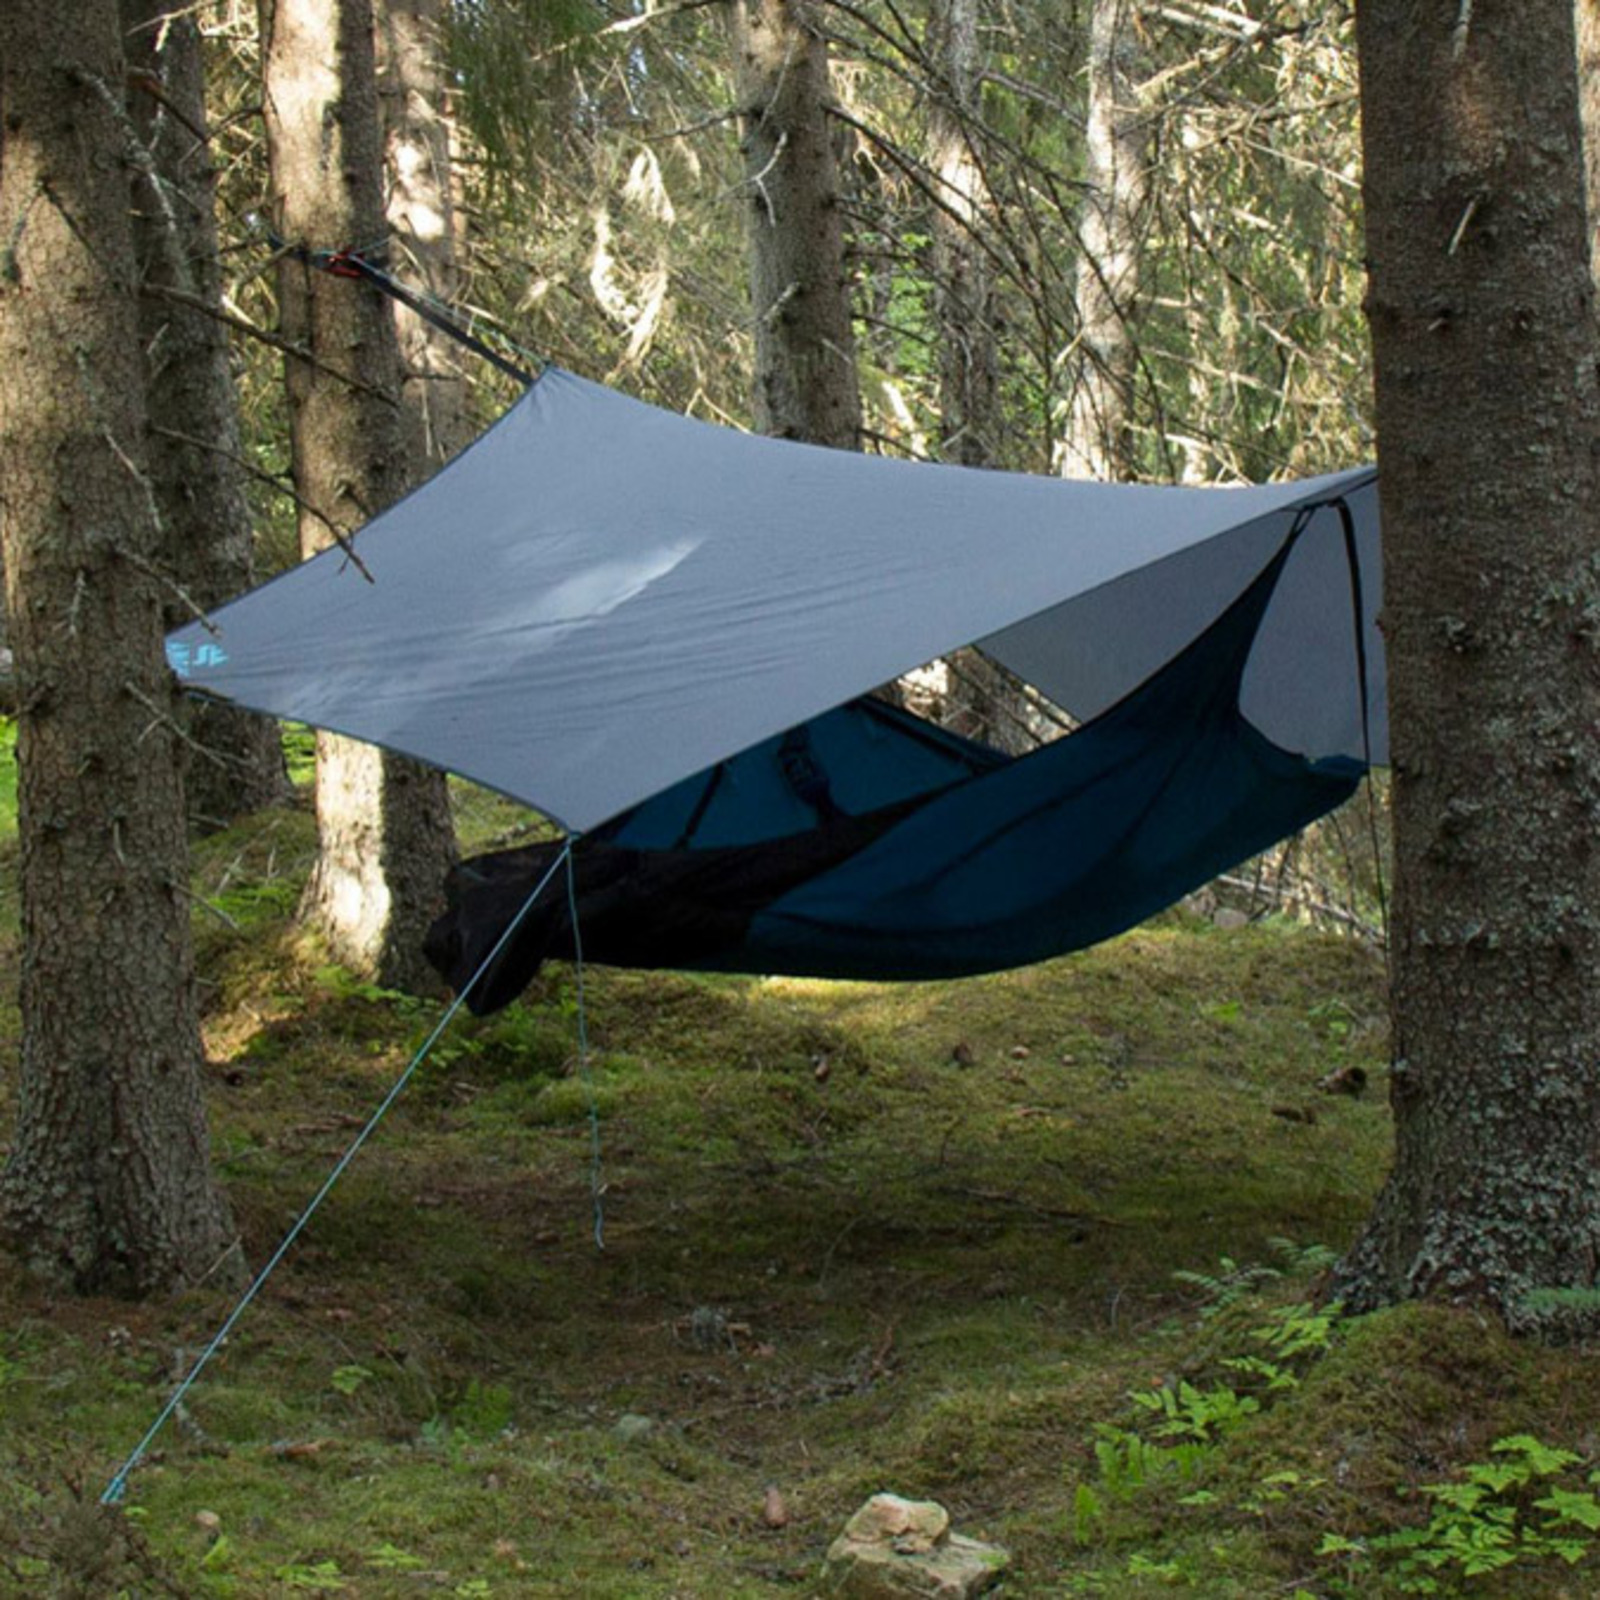 a com explore on hammocks cloud backcountry tent camping hammock best